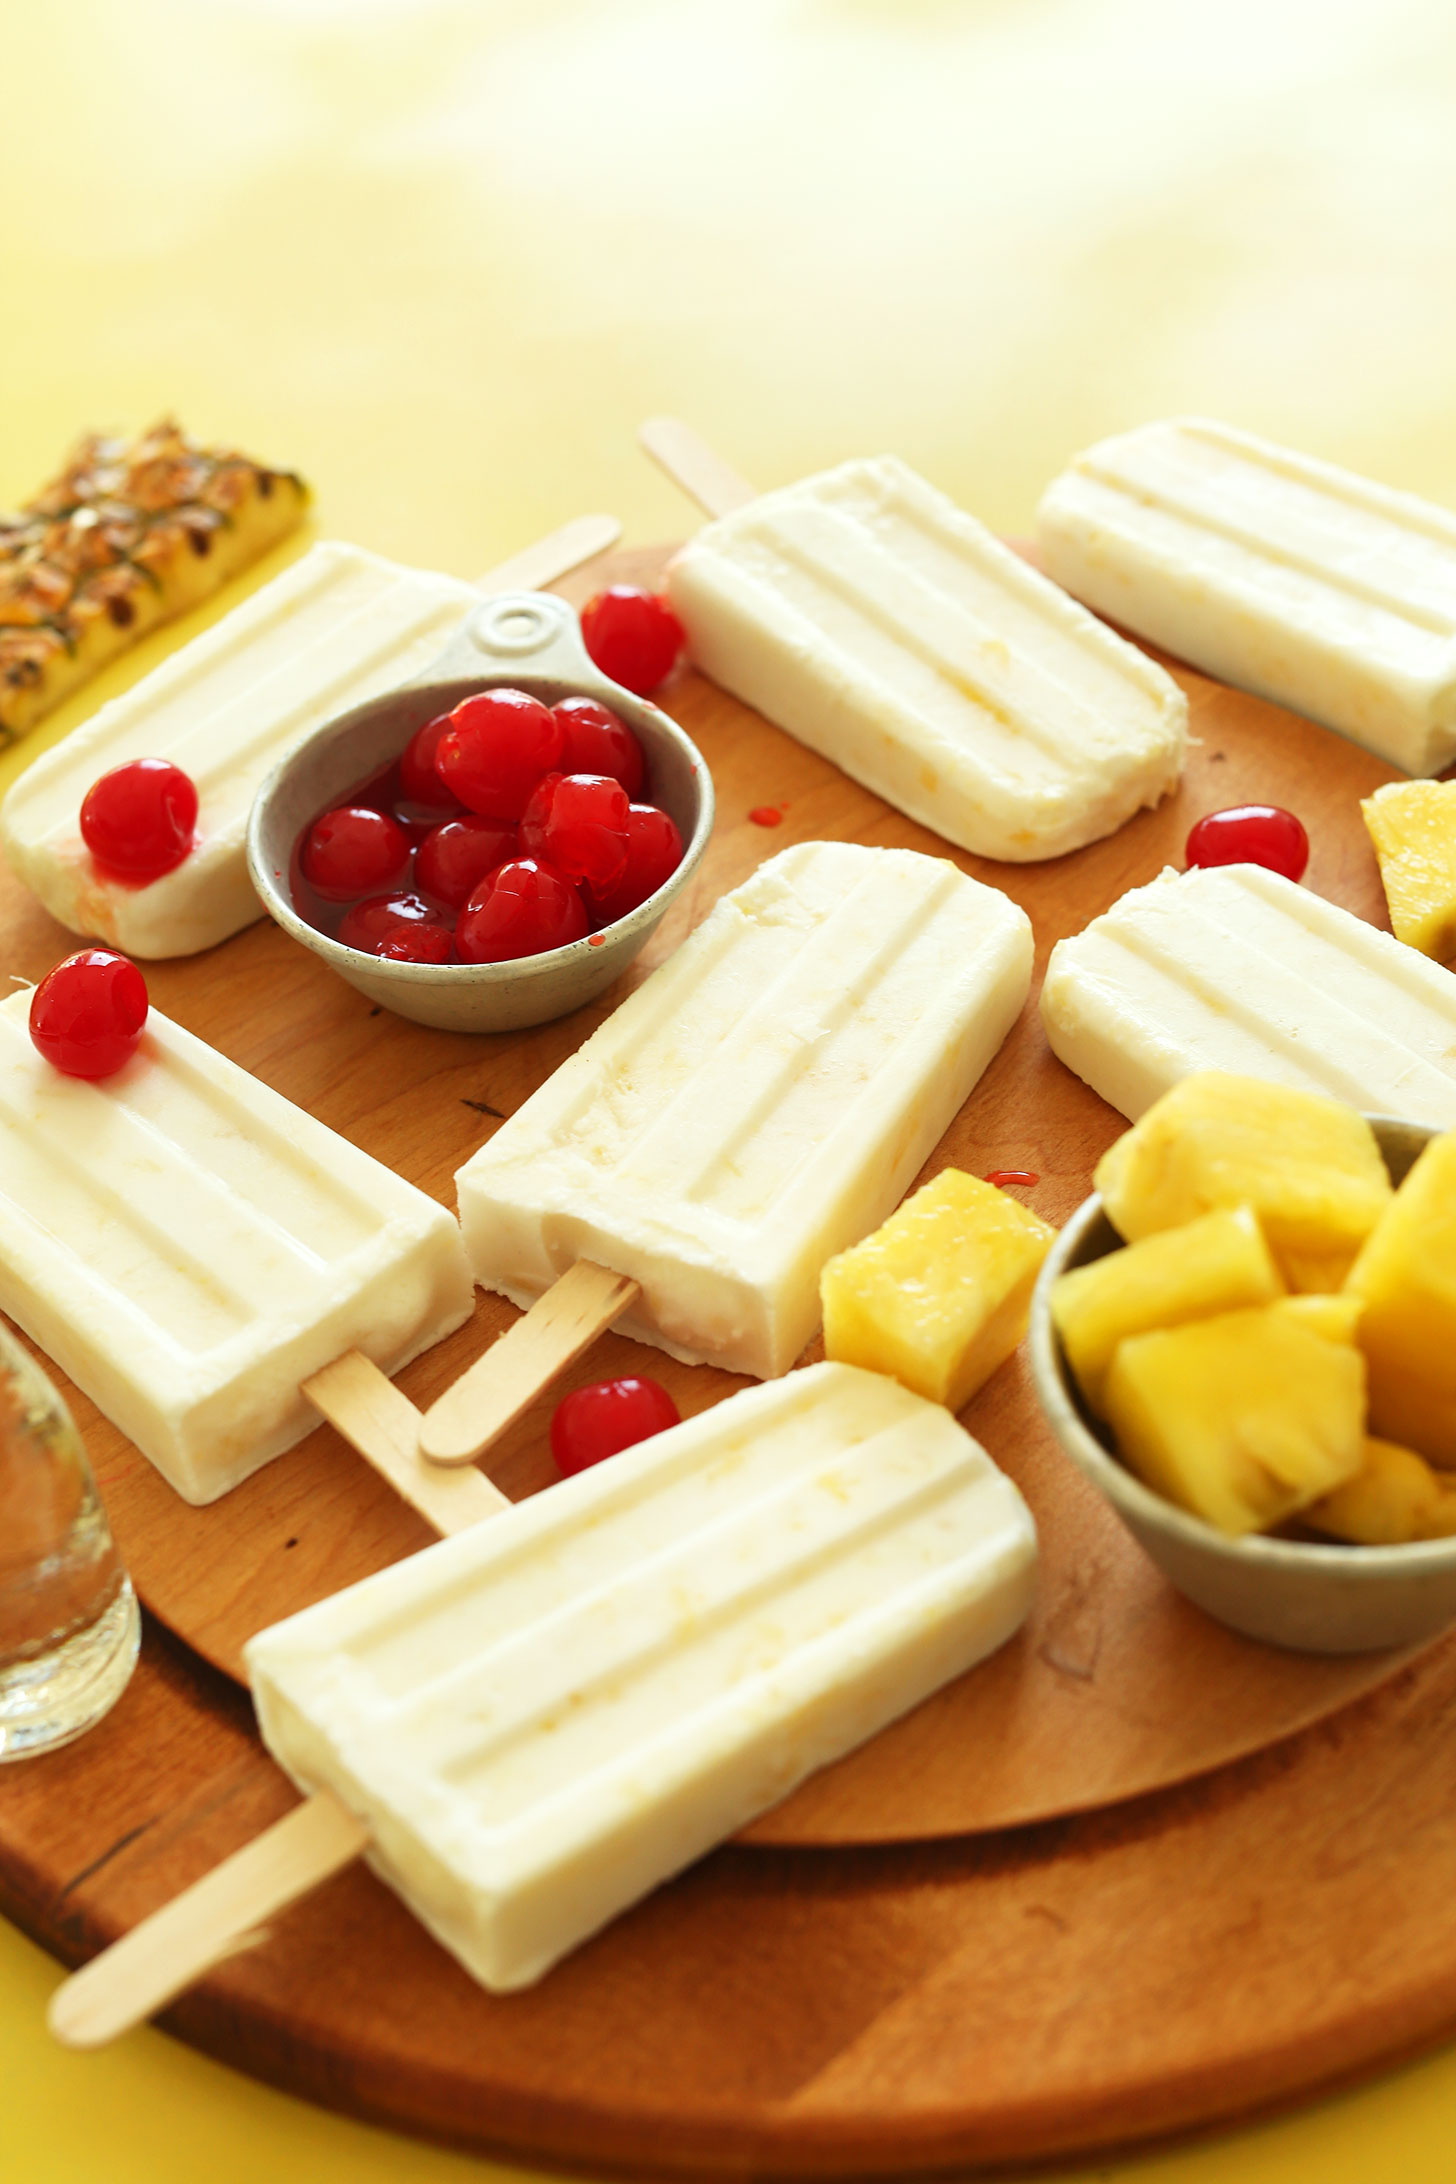 Homemade refreshing Pina Colada vegan Popsicles surrounded by fresh fruit